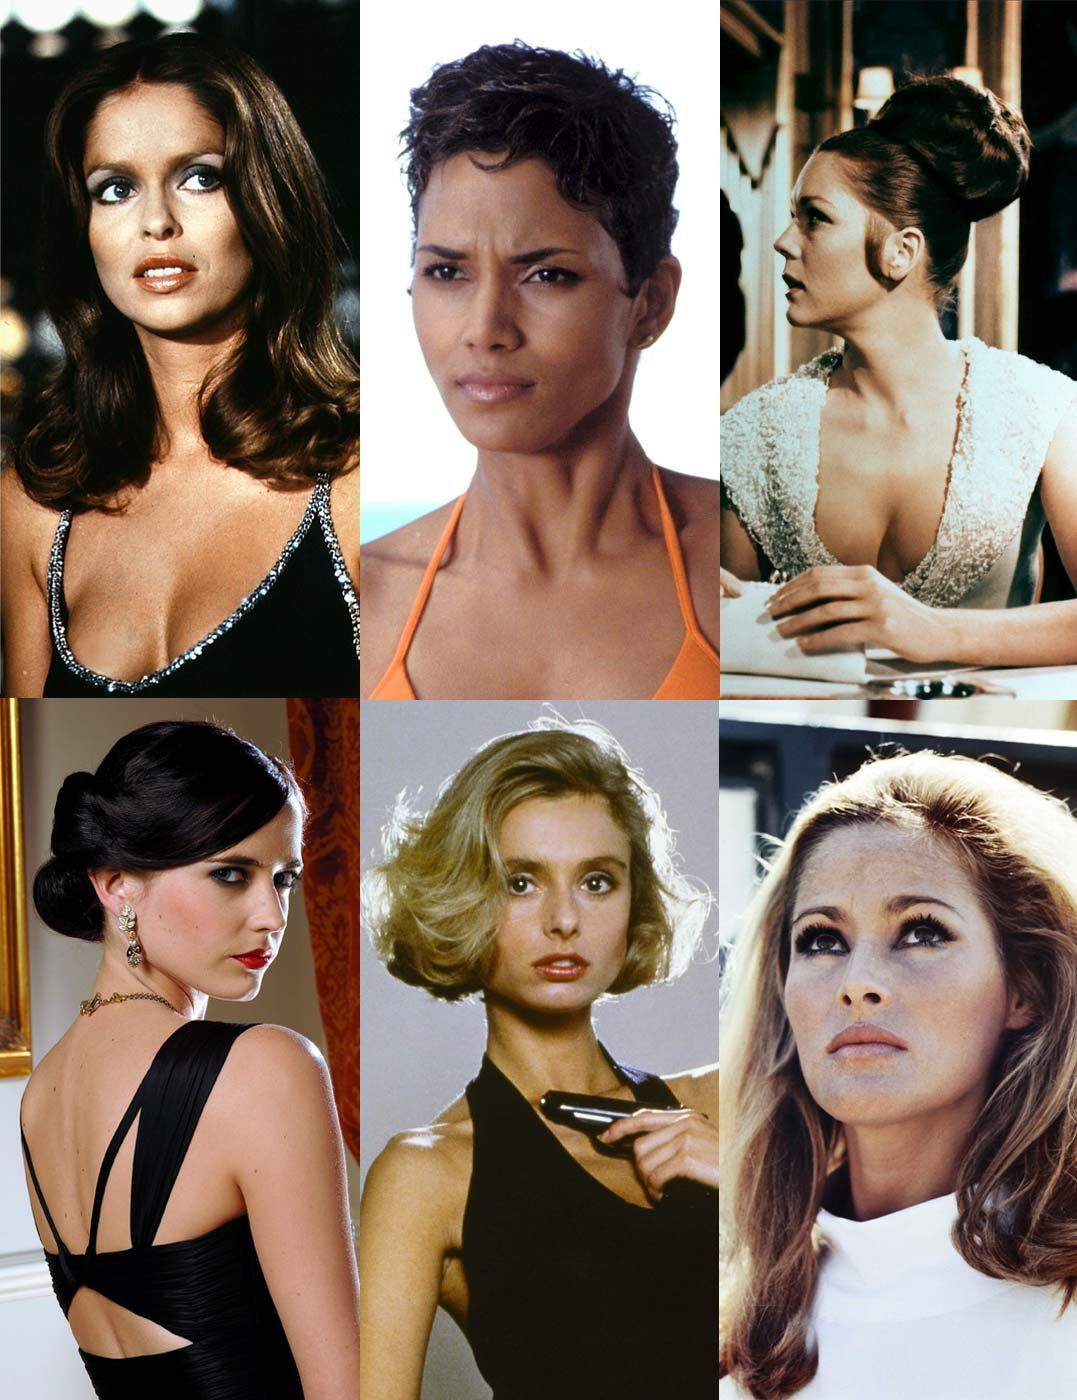 the most iconic bond girl hairstyles of all time